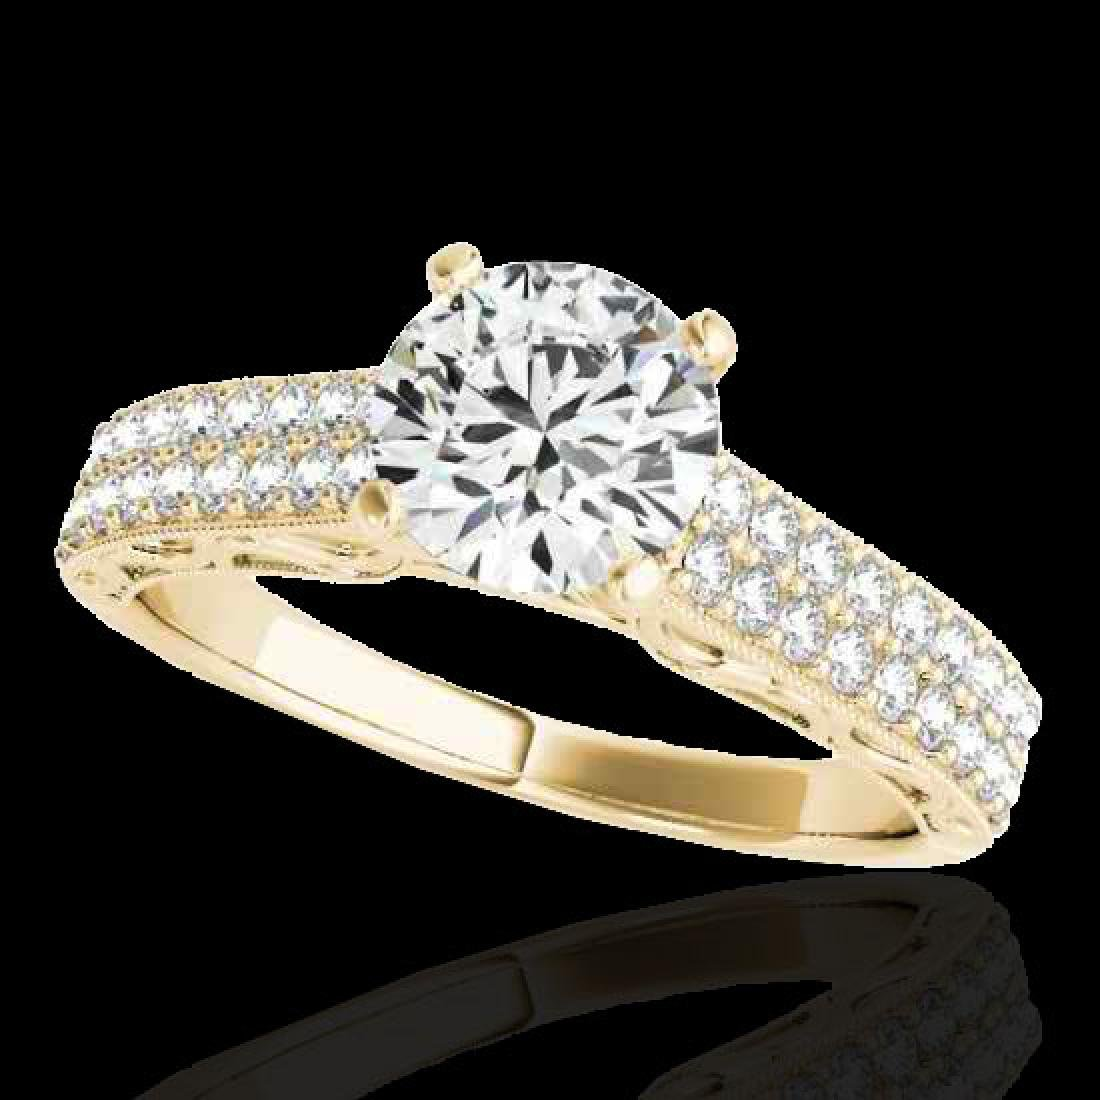 1.41 CTW H-SI/I Certified Diamond Solitaire Antique